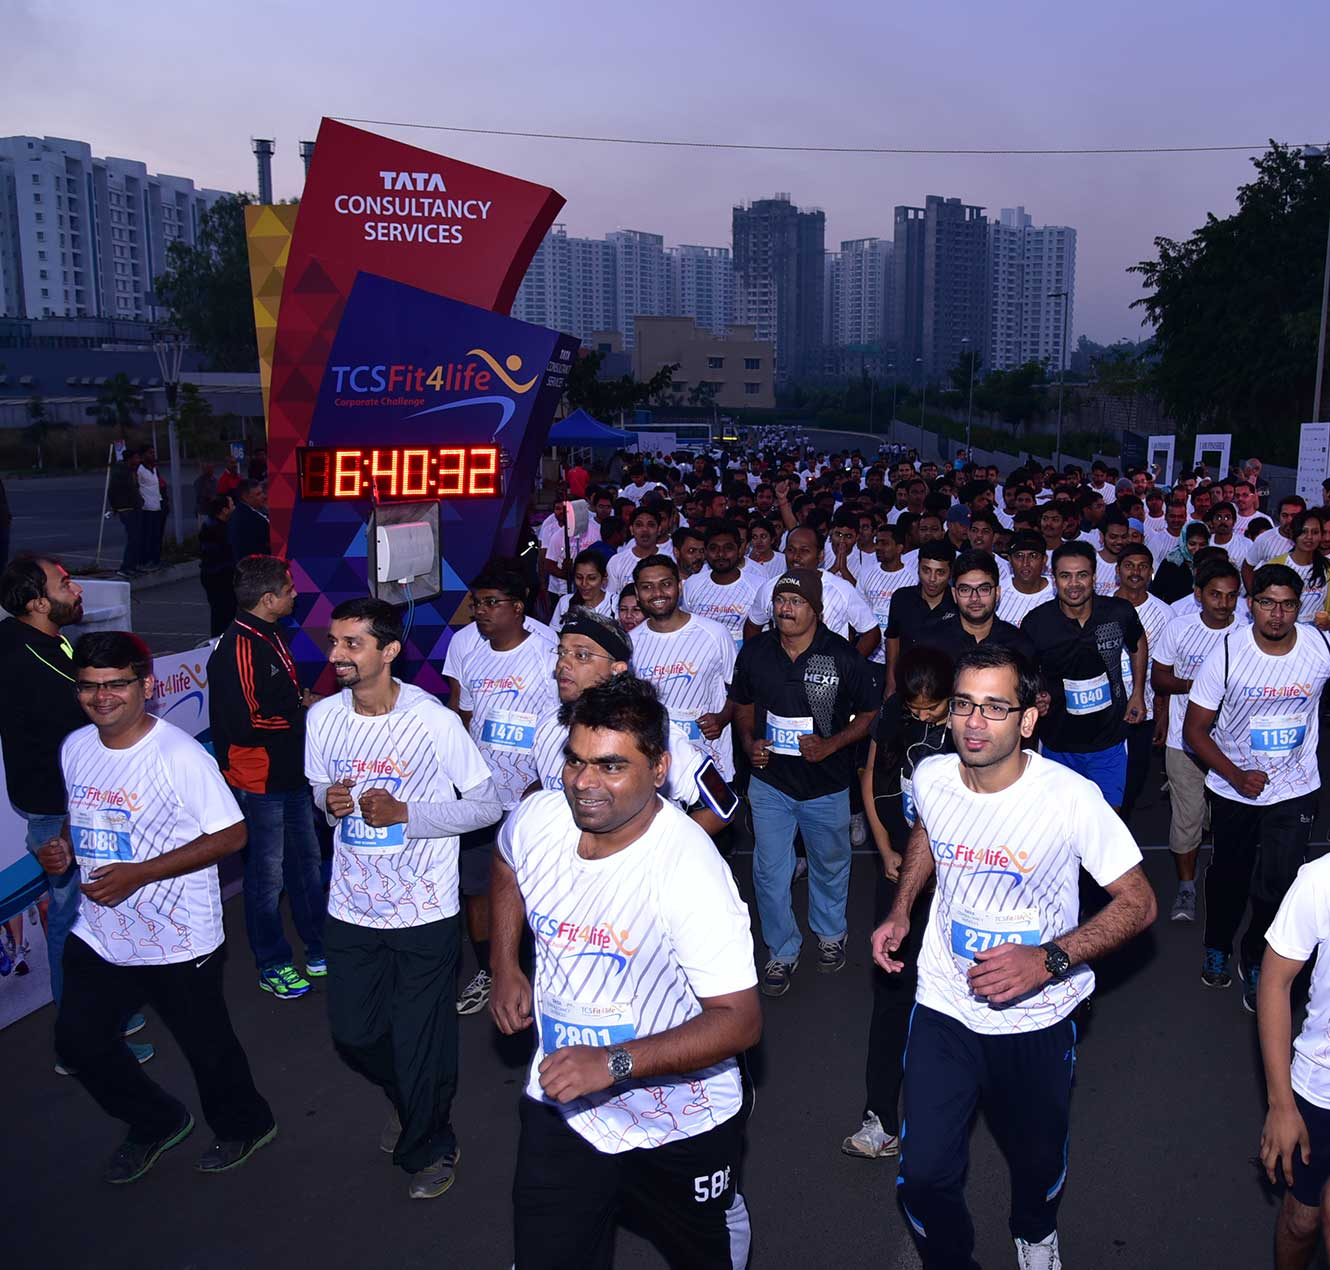 TCS' Fit4life Corporate Challenge to Promote Wellness in the Community